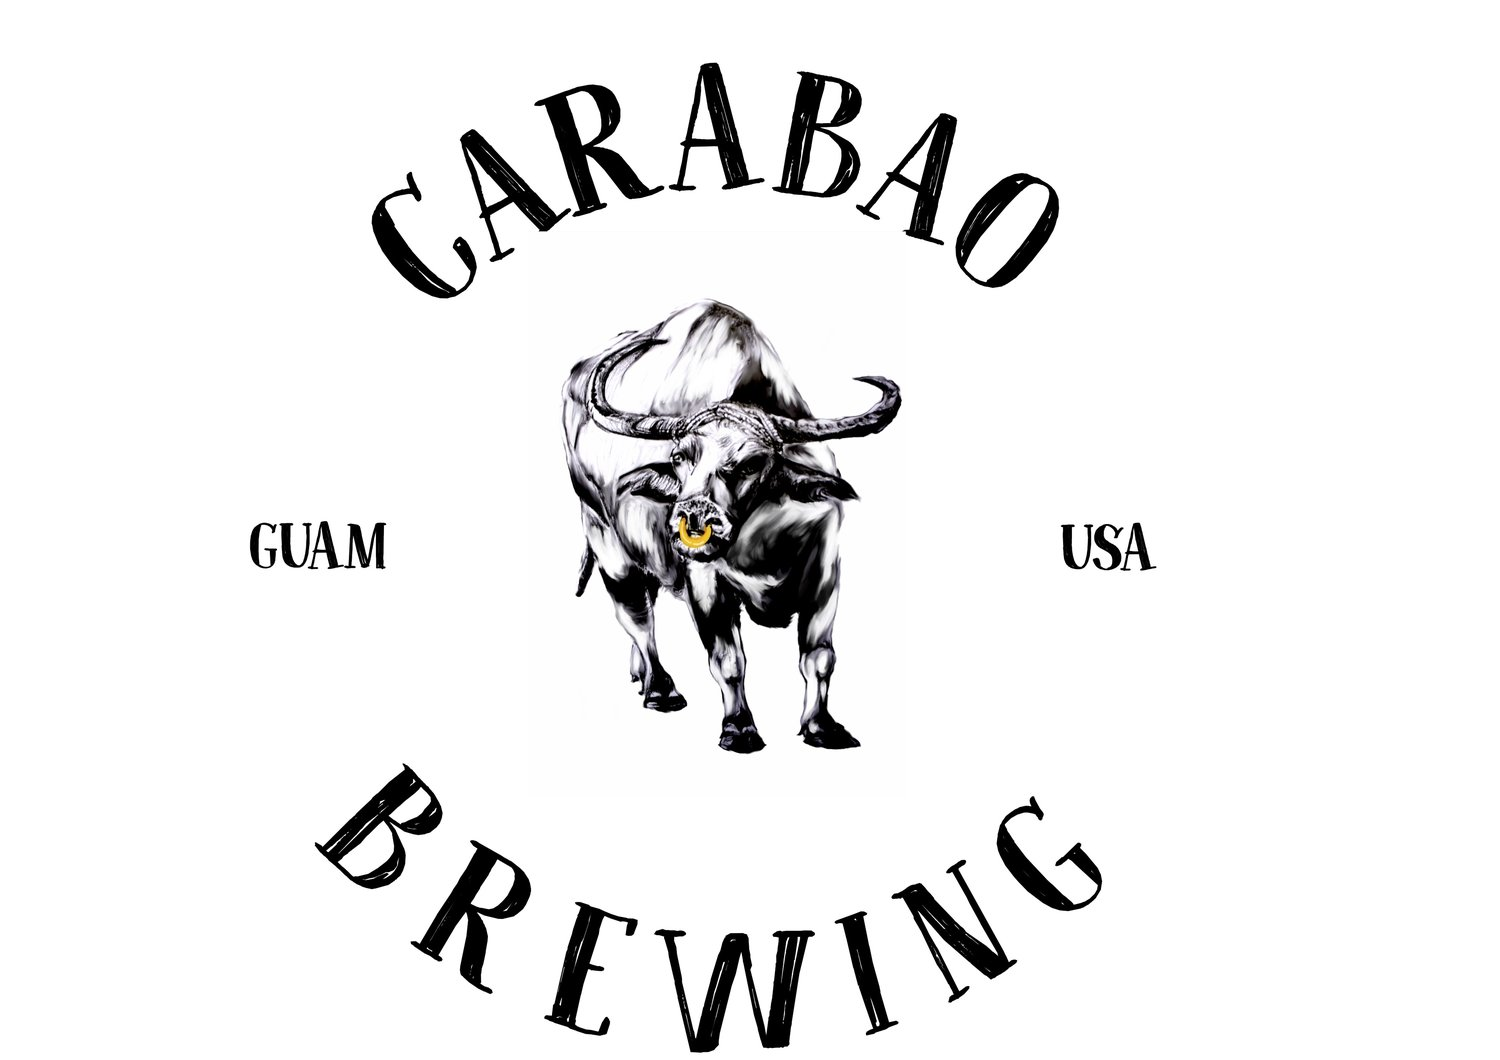 CARABAO BREWING